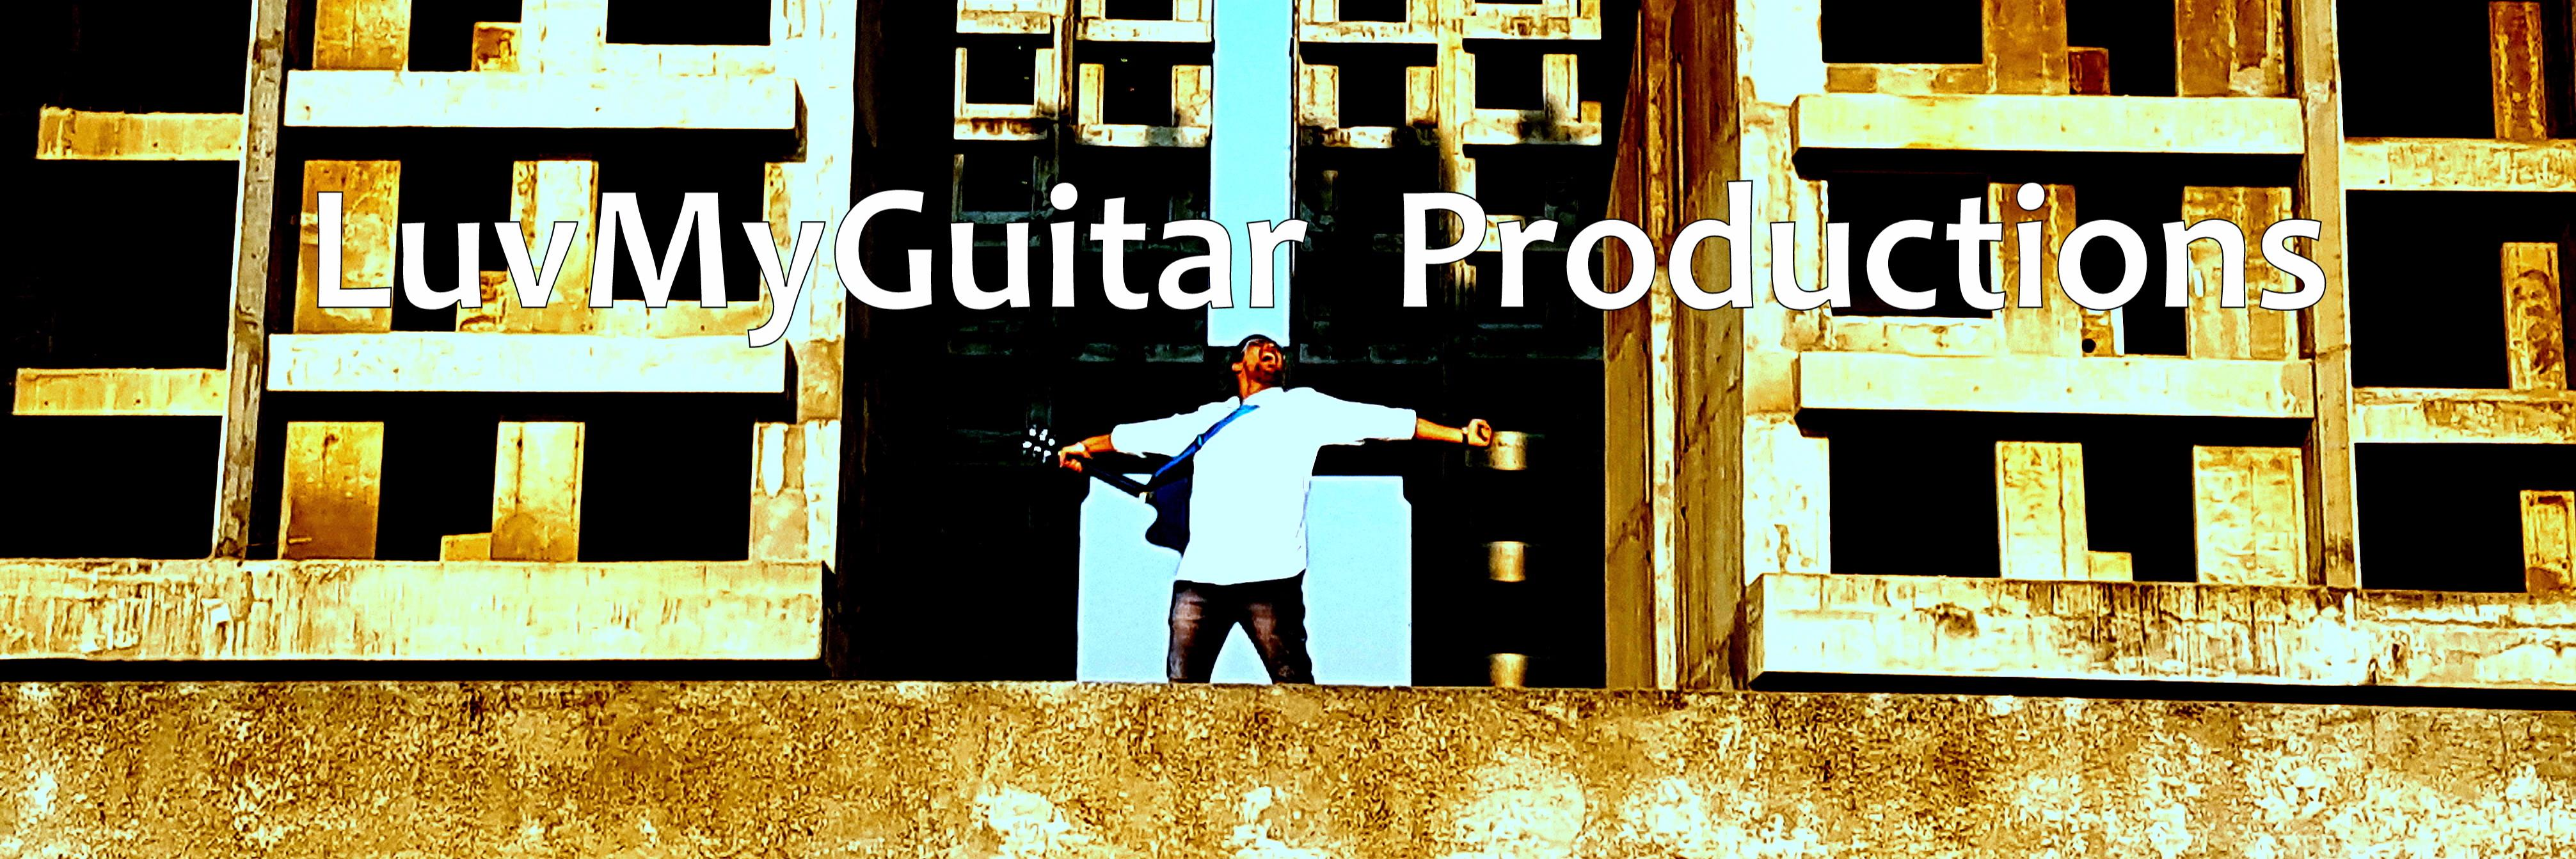 LuvMyguitar Productions